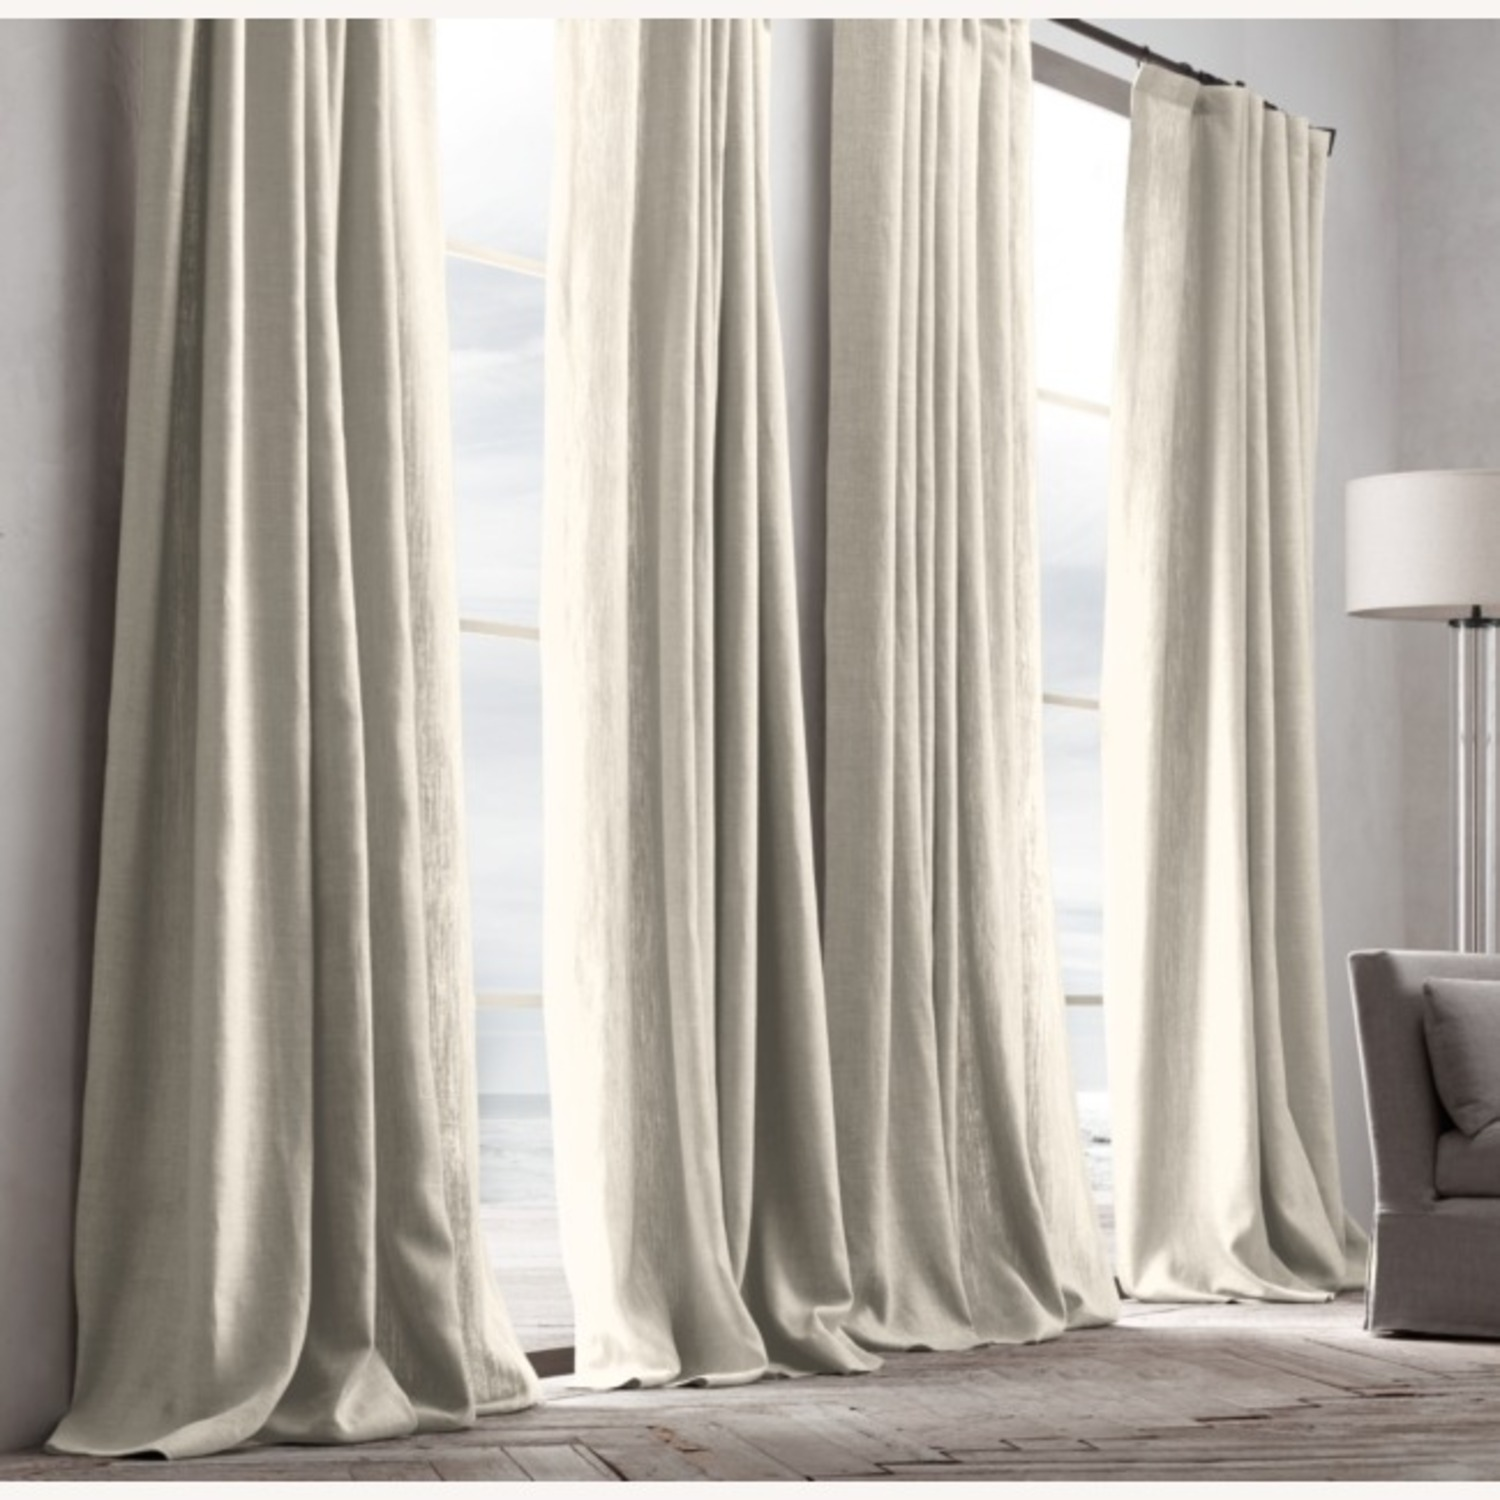 Restoration Hardware Belgian Linen Curtain Natural 108L - image-1